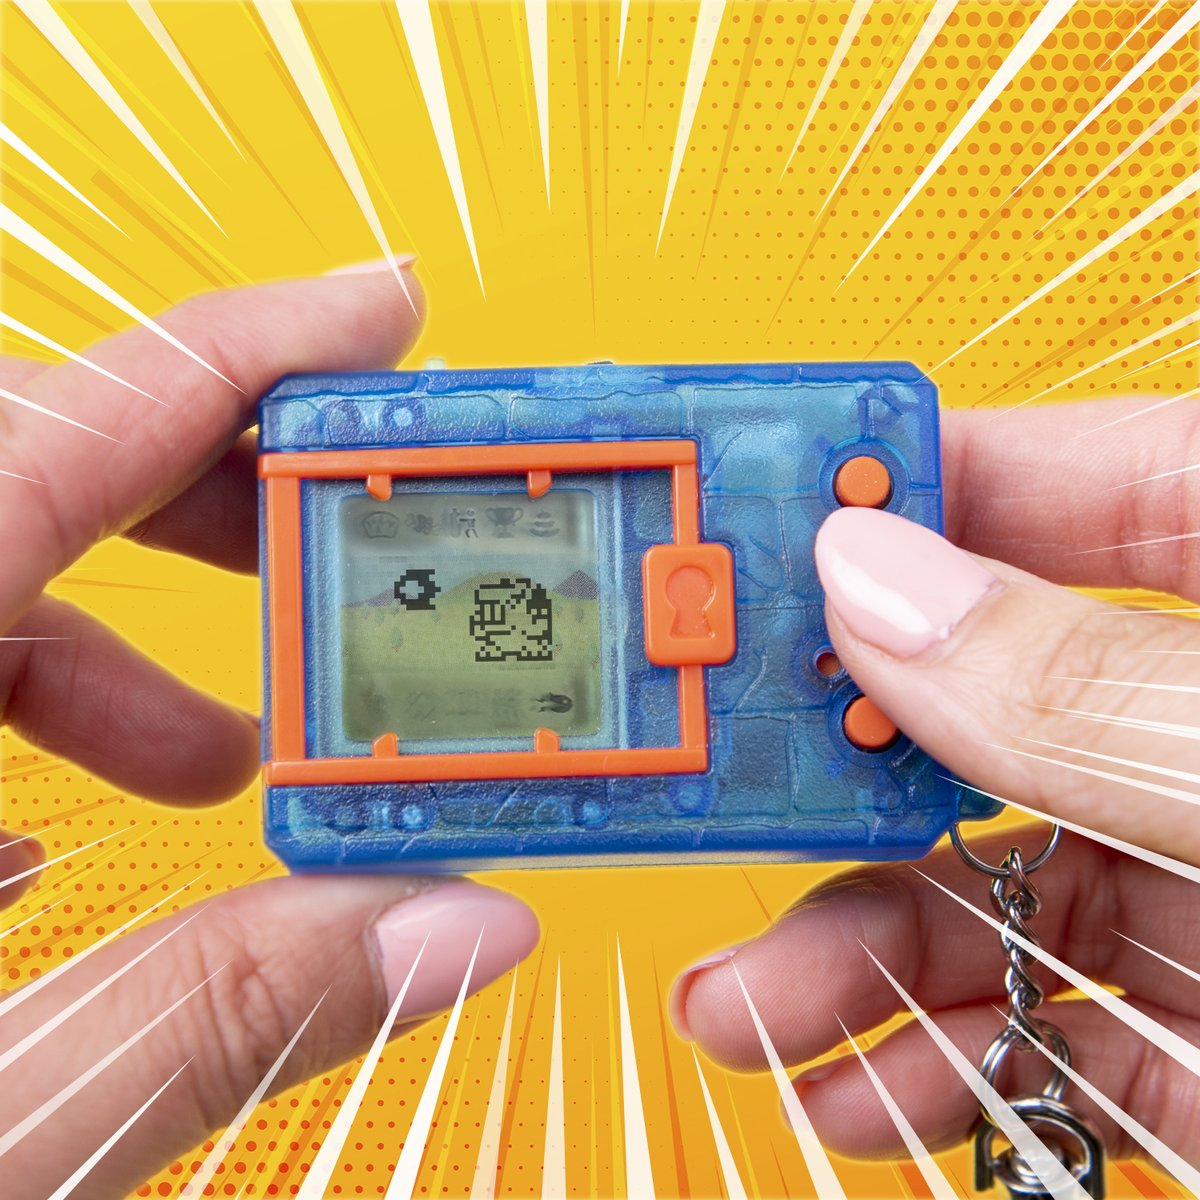 The long weekend means you'll have more time to feed & train your Digimon!  #Digimon #Bandai #BandaiAmerica #Battle #Virtualpet #Digitalmonster #90s #デジモン https://t.co/KbQ1ChTfWc